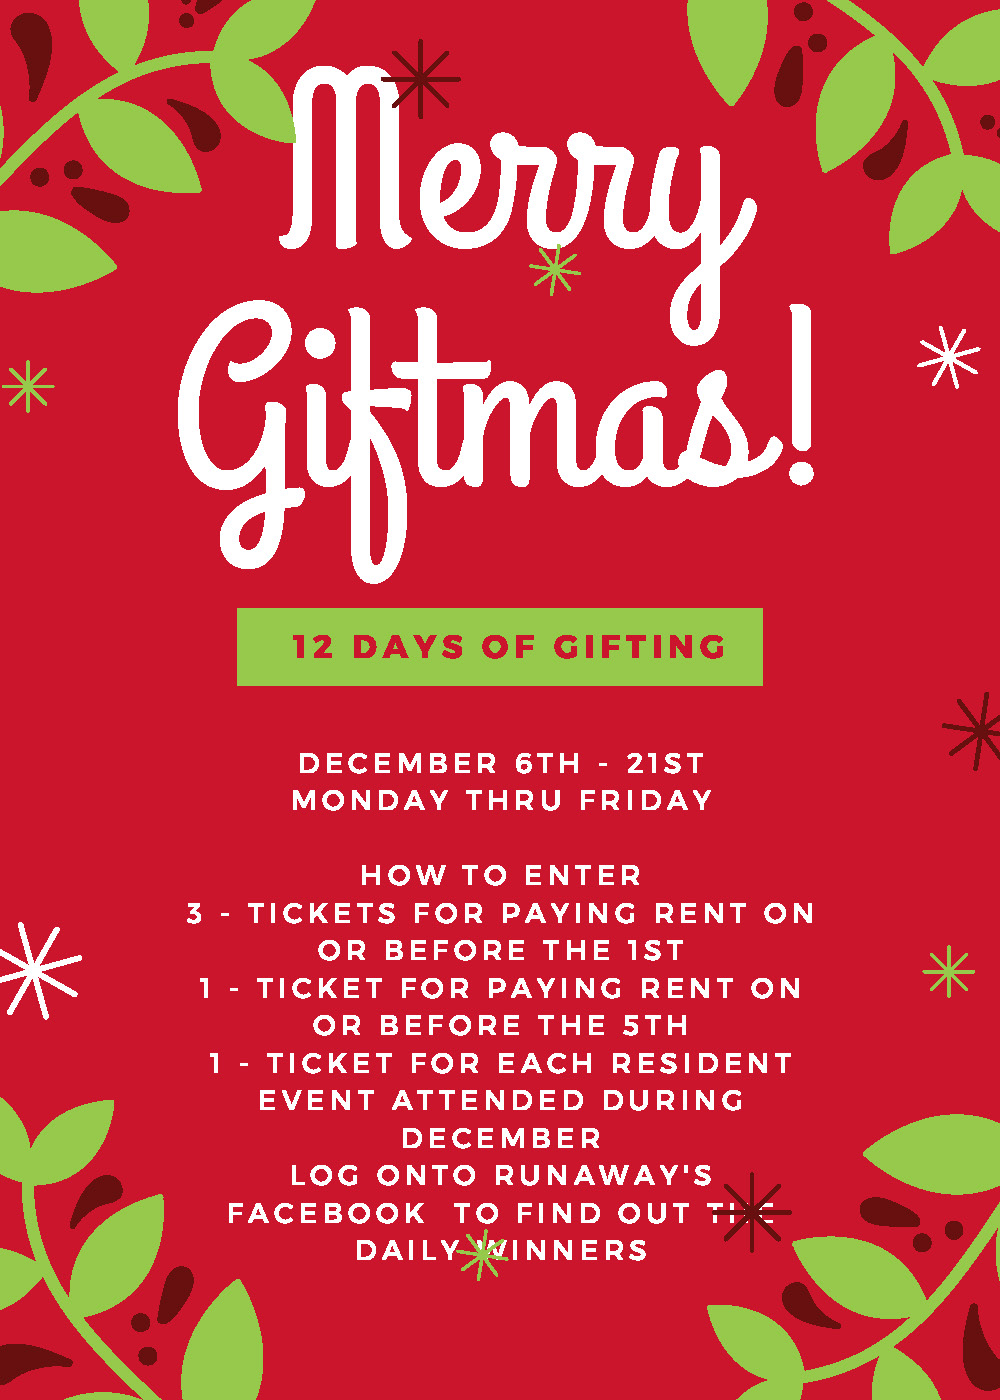 Merry Giftmas- 12 Days of Giving from December 6th-21st